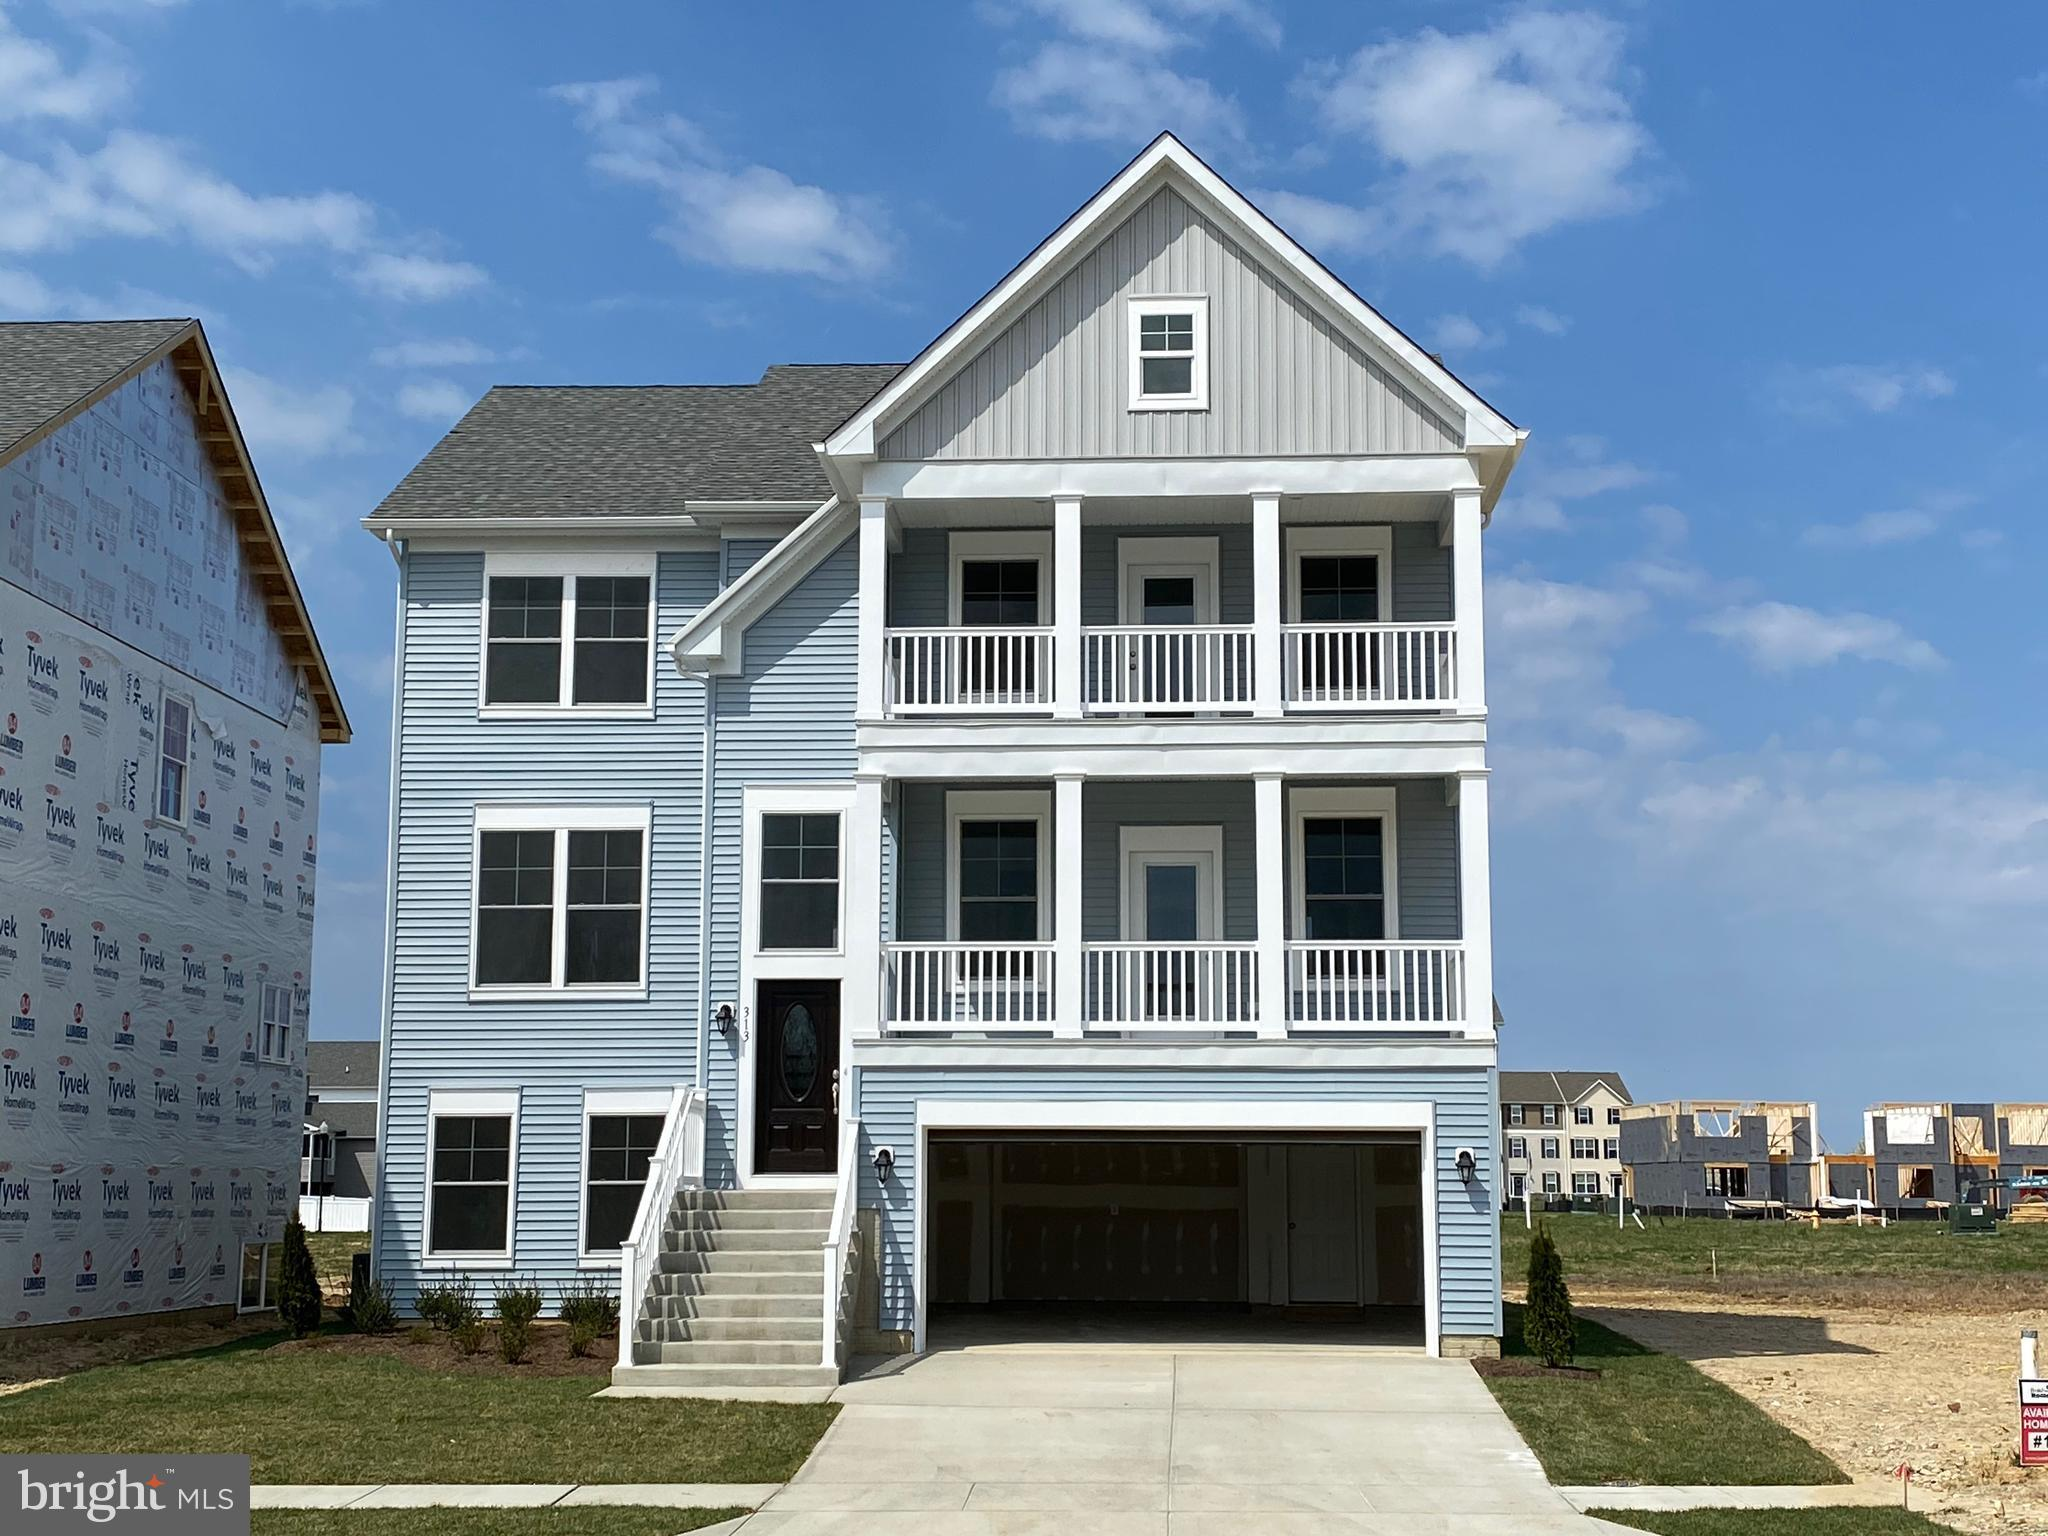 Lot 101 - SOLD - TO BE BUILT BY BALDWIN HOMES INC. The Tawes model will feature 4BR, 3.5BA, 2 car fr